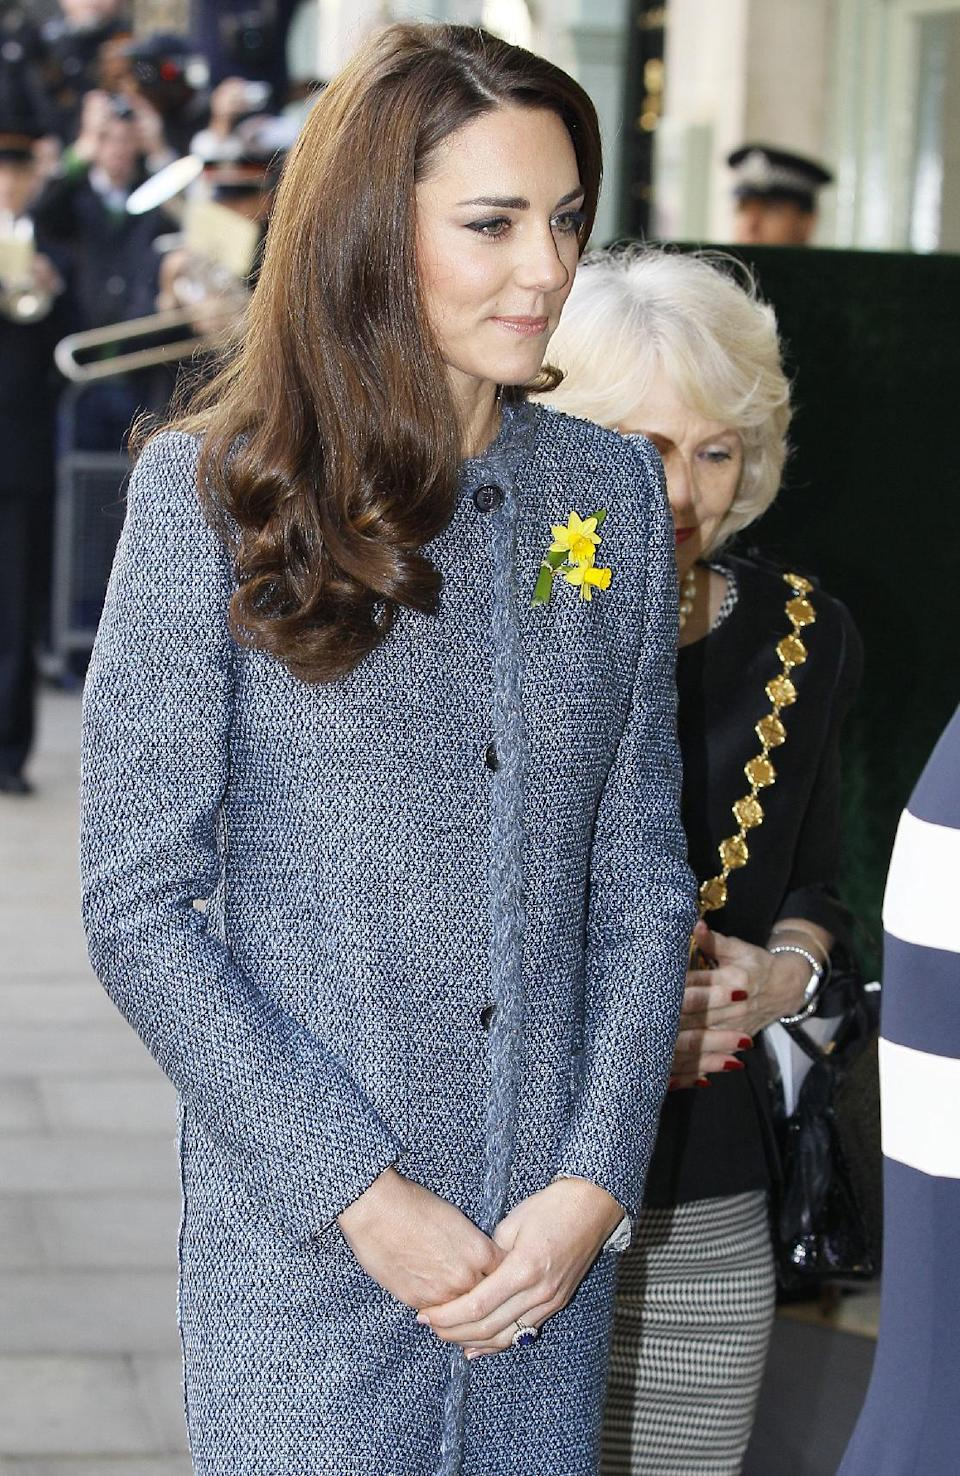 Kate, Duchess of Cambridge arrives with Britain's Queen Elizabeth II, Camilla, Duchess of Cornwall, both unseen, at a Fortnum and Mason department store in central London, Thursday, March, 1, 2012. (AP Photo/Alastair Grant)